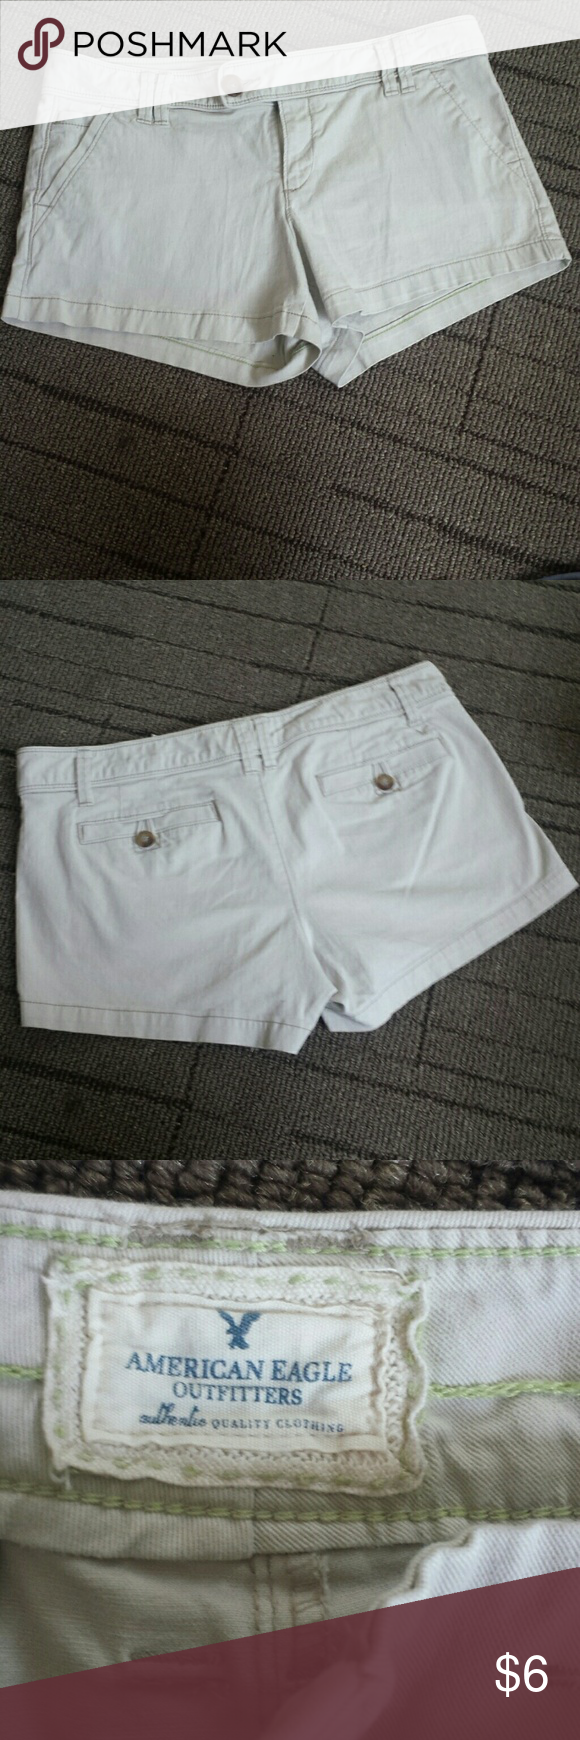 American eagle outfitters shorts Khaki shorts, a little wrinkled in pic, like new Shorts